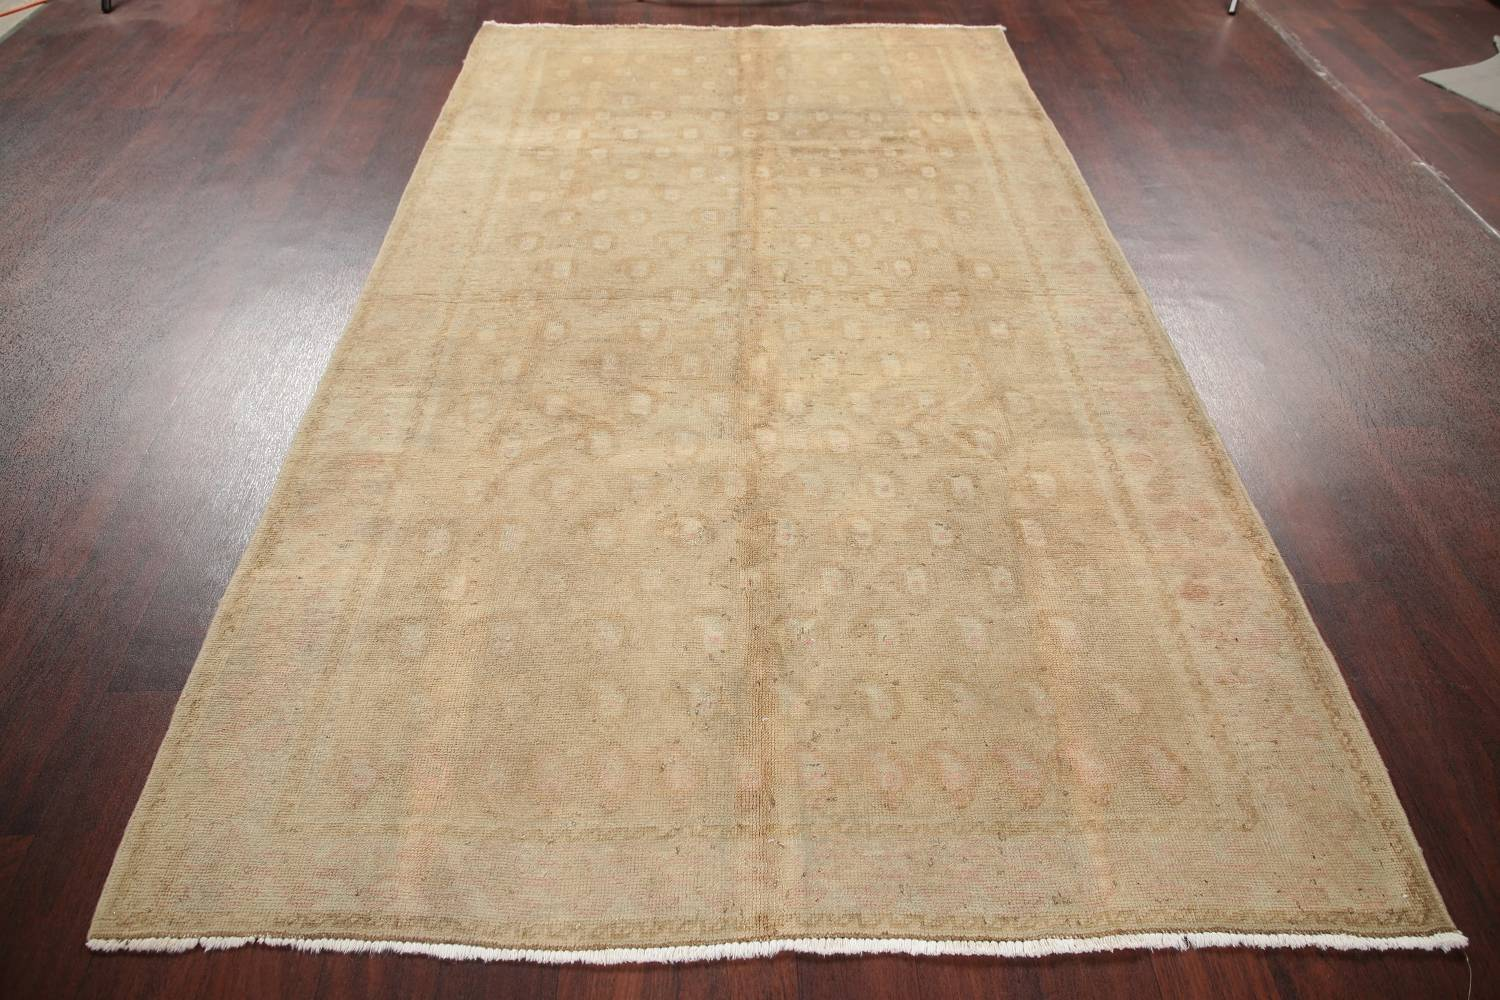 Antique Muted Gold Distressed Sarouk Persian Wool Rug 5x8 image 15